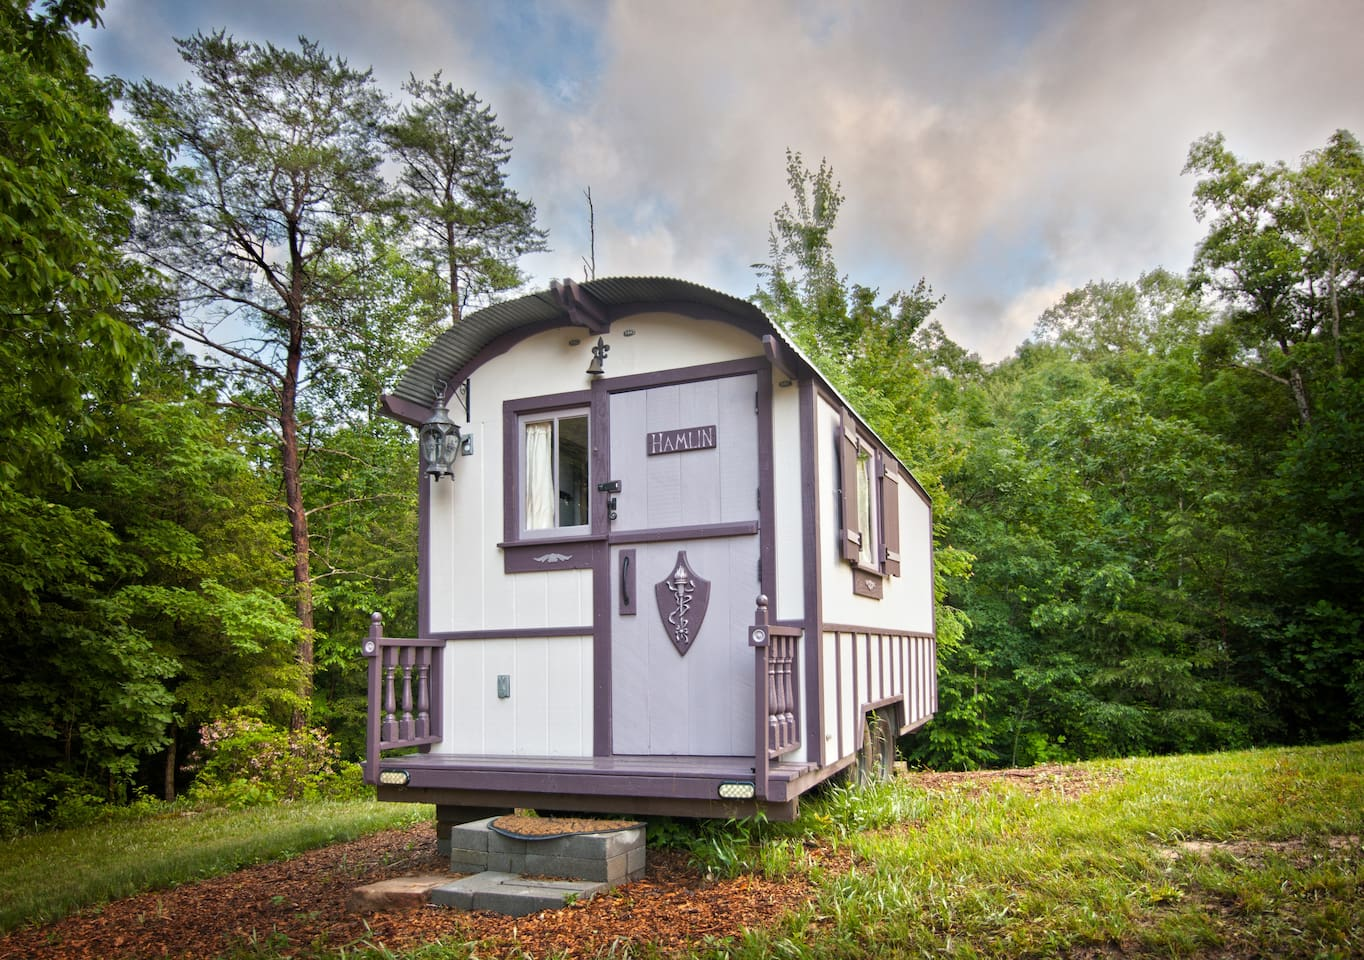 Hamlin is Celtic for Home.  You'll feel right at home glamping in this gorgeous tiny home.